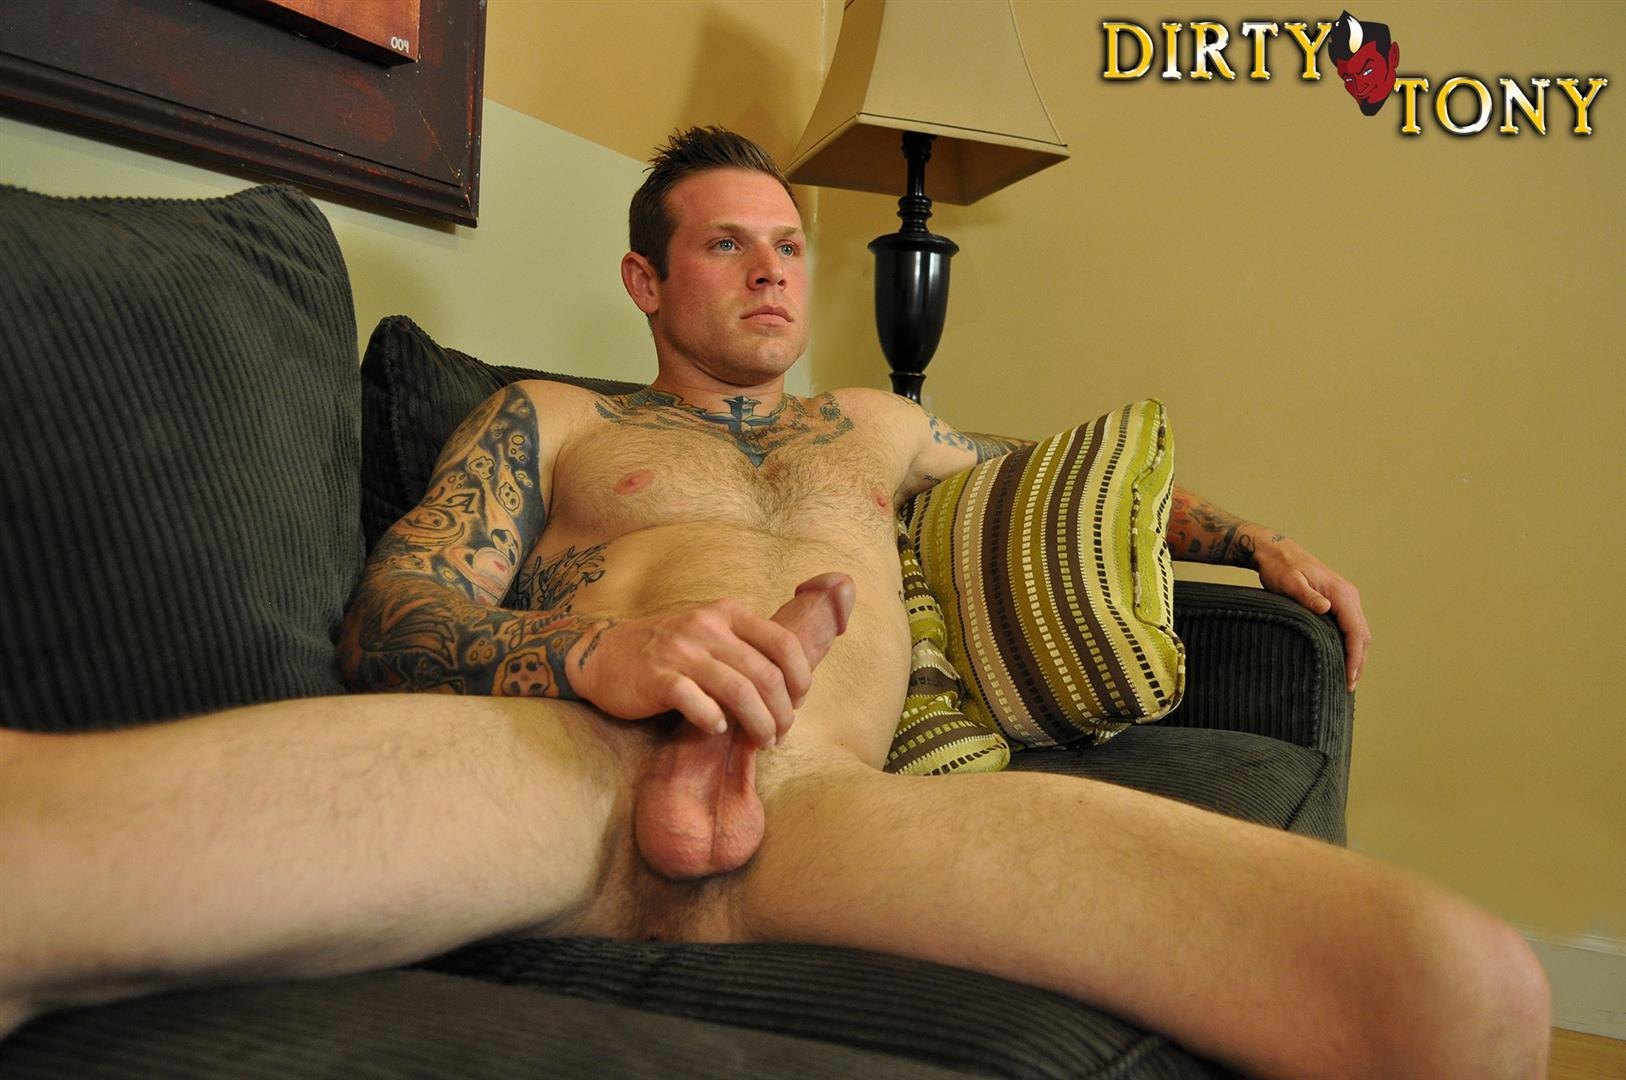 Dirty-Tony-Conor-Michaels-Straight-Hunk-Jerking-His-Big-Cock-Amateur-Gay-Porn-12 Amateur Straight Hairy Tatted Muscle Hunk Stroking His Thick Cock